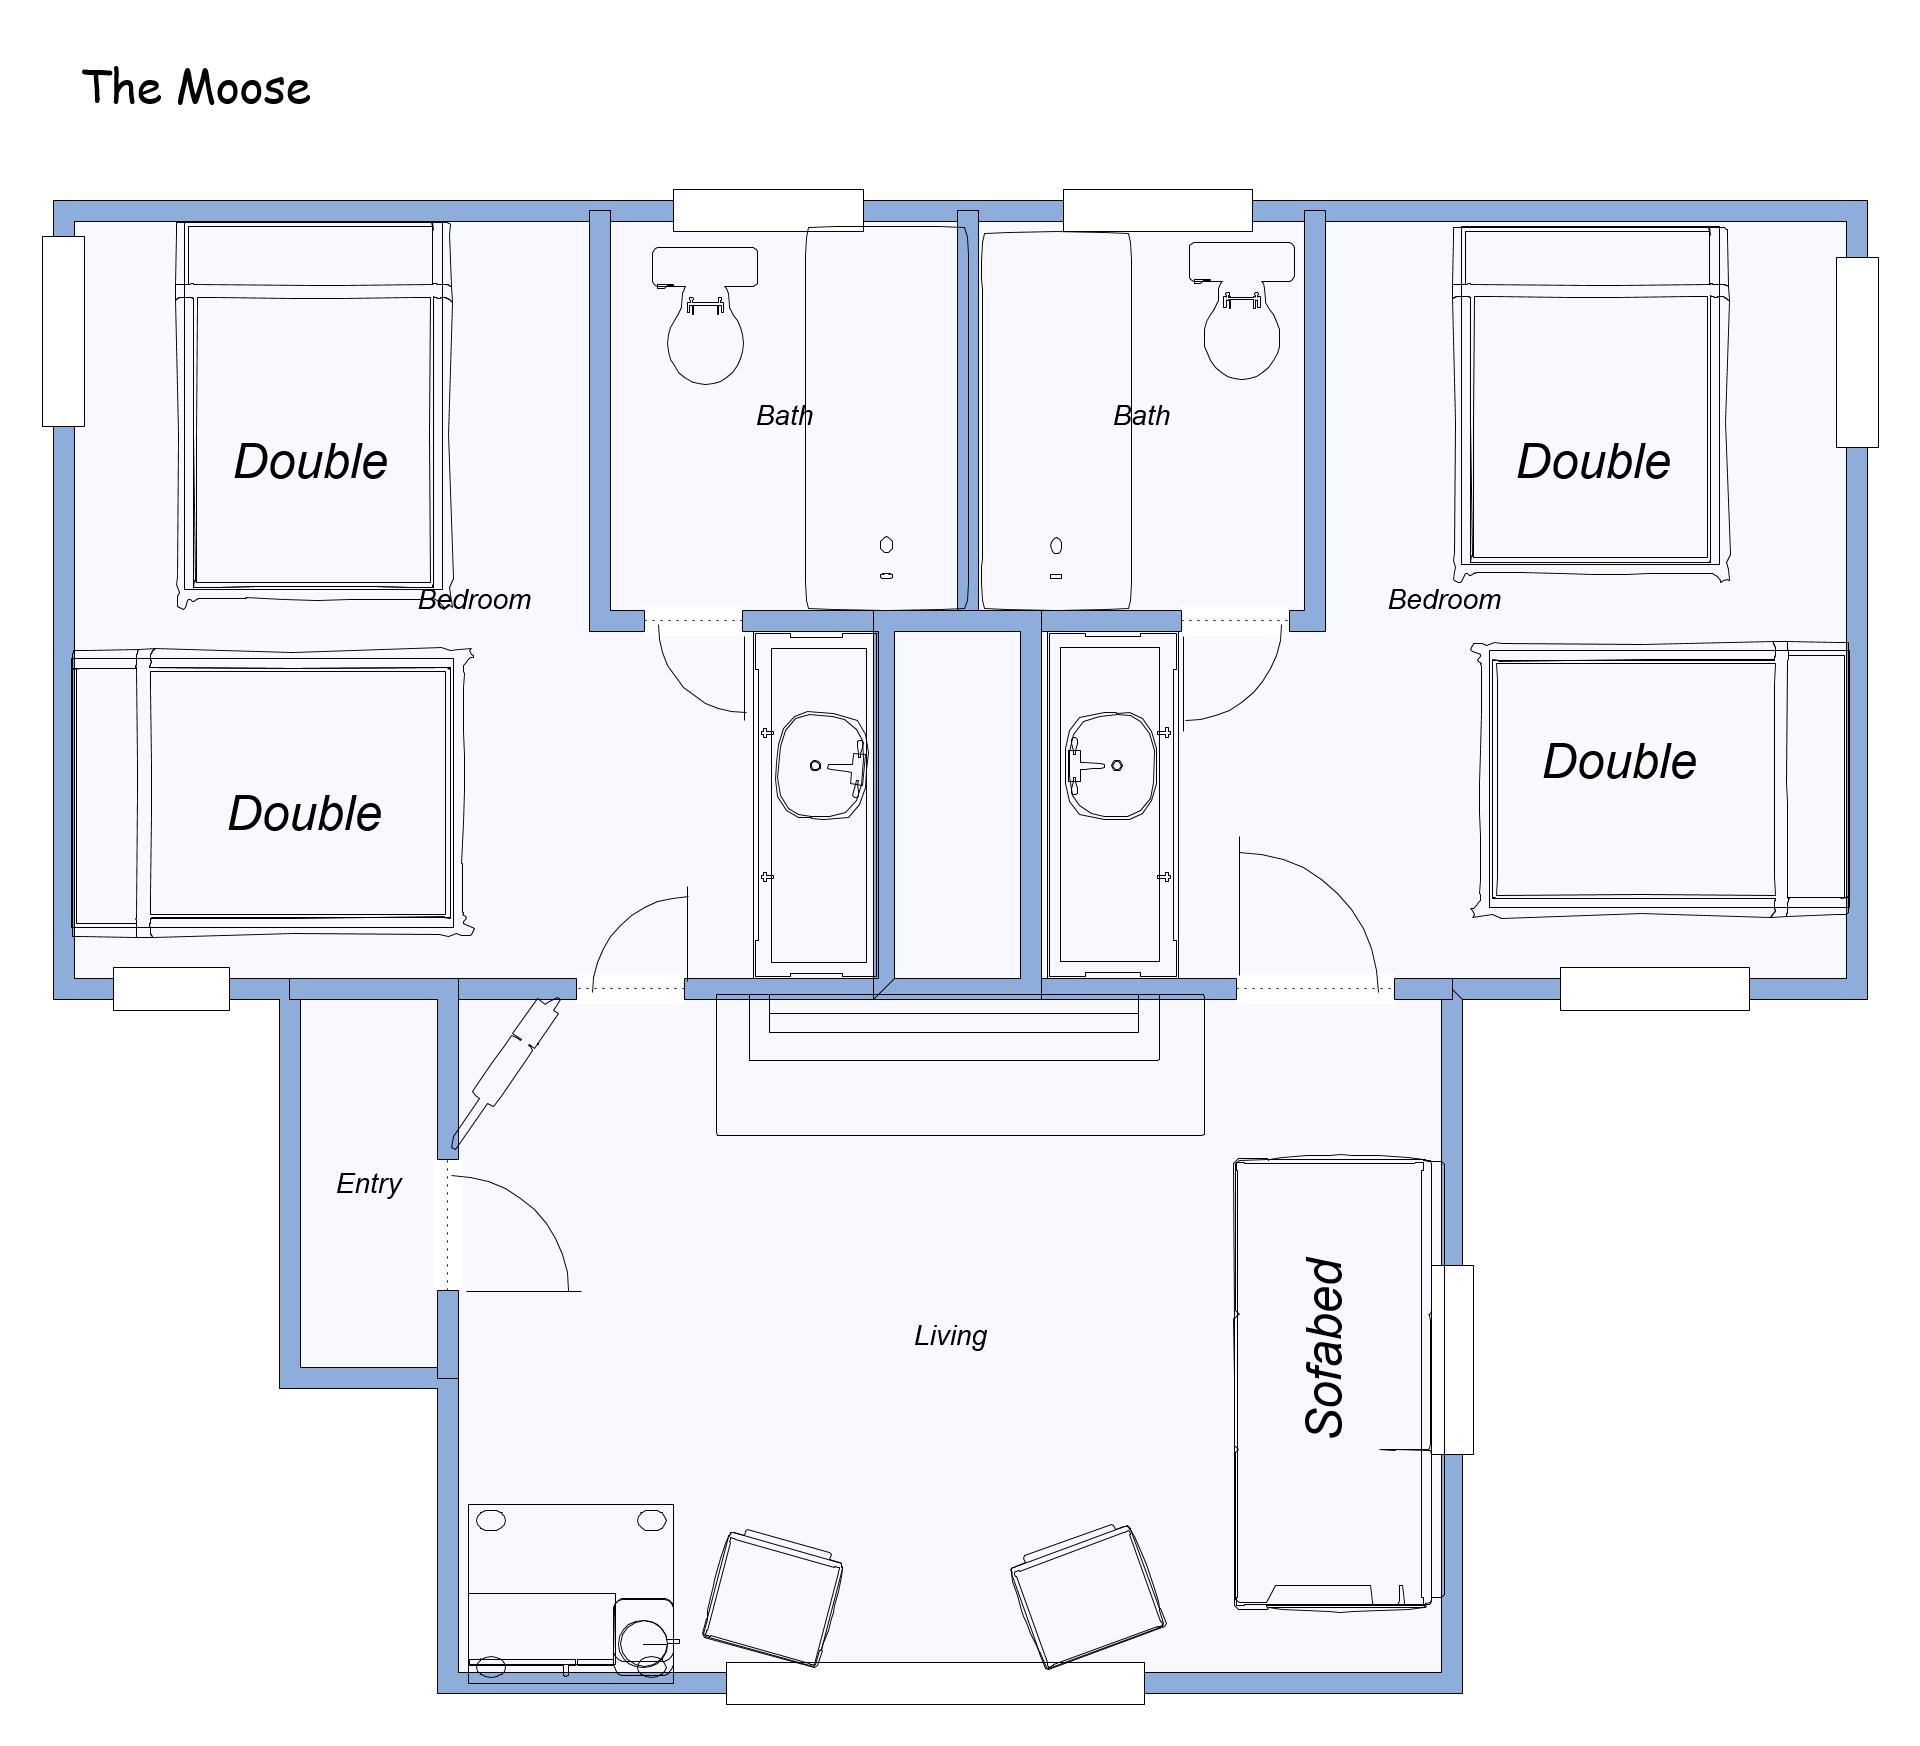 Layout of the Moose